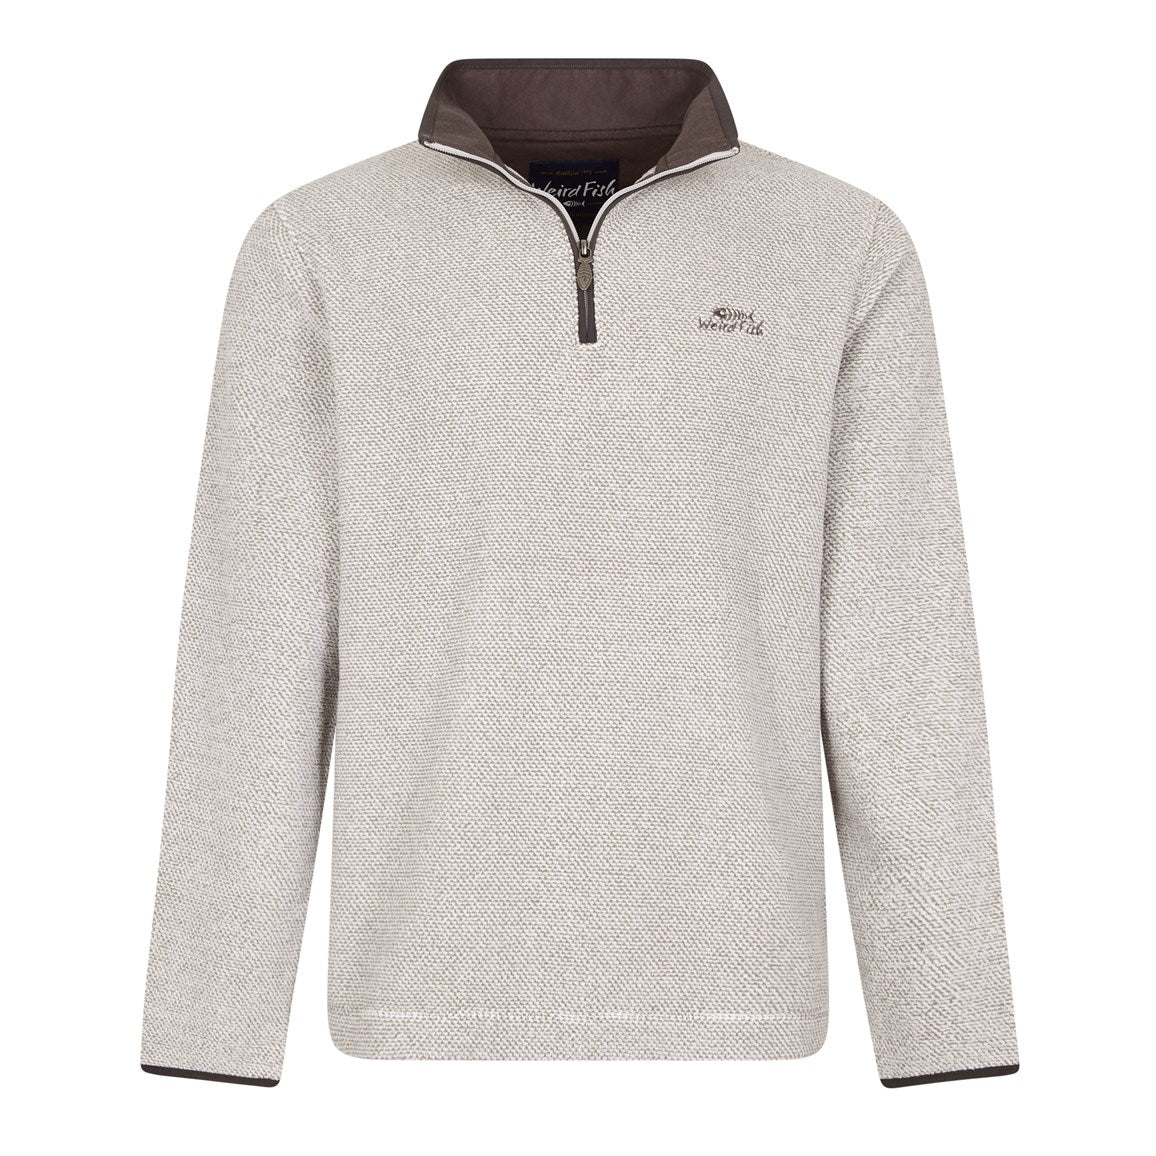 Weird Fish Errill 1/4 Zip Textured Fleece Sweatshirt